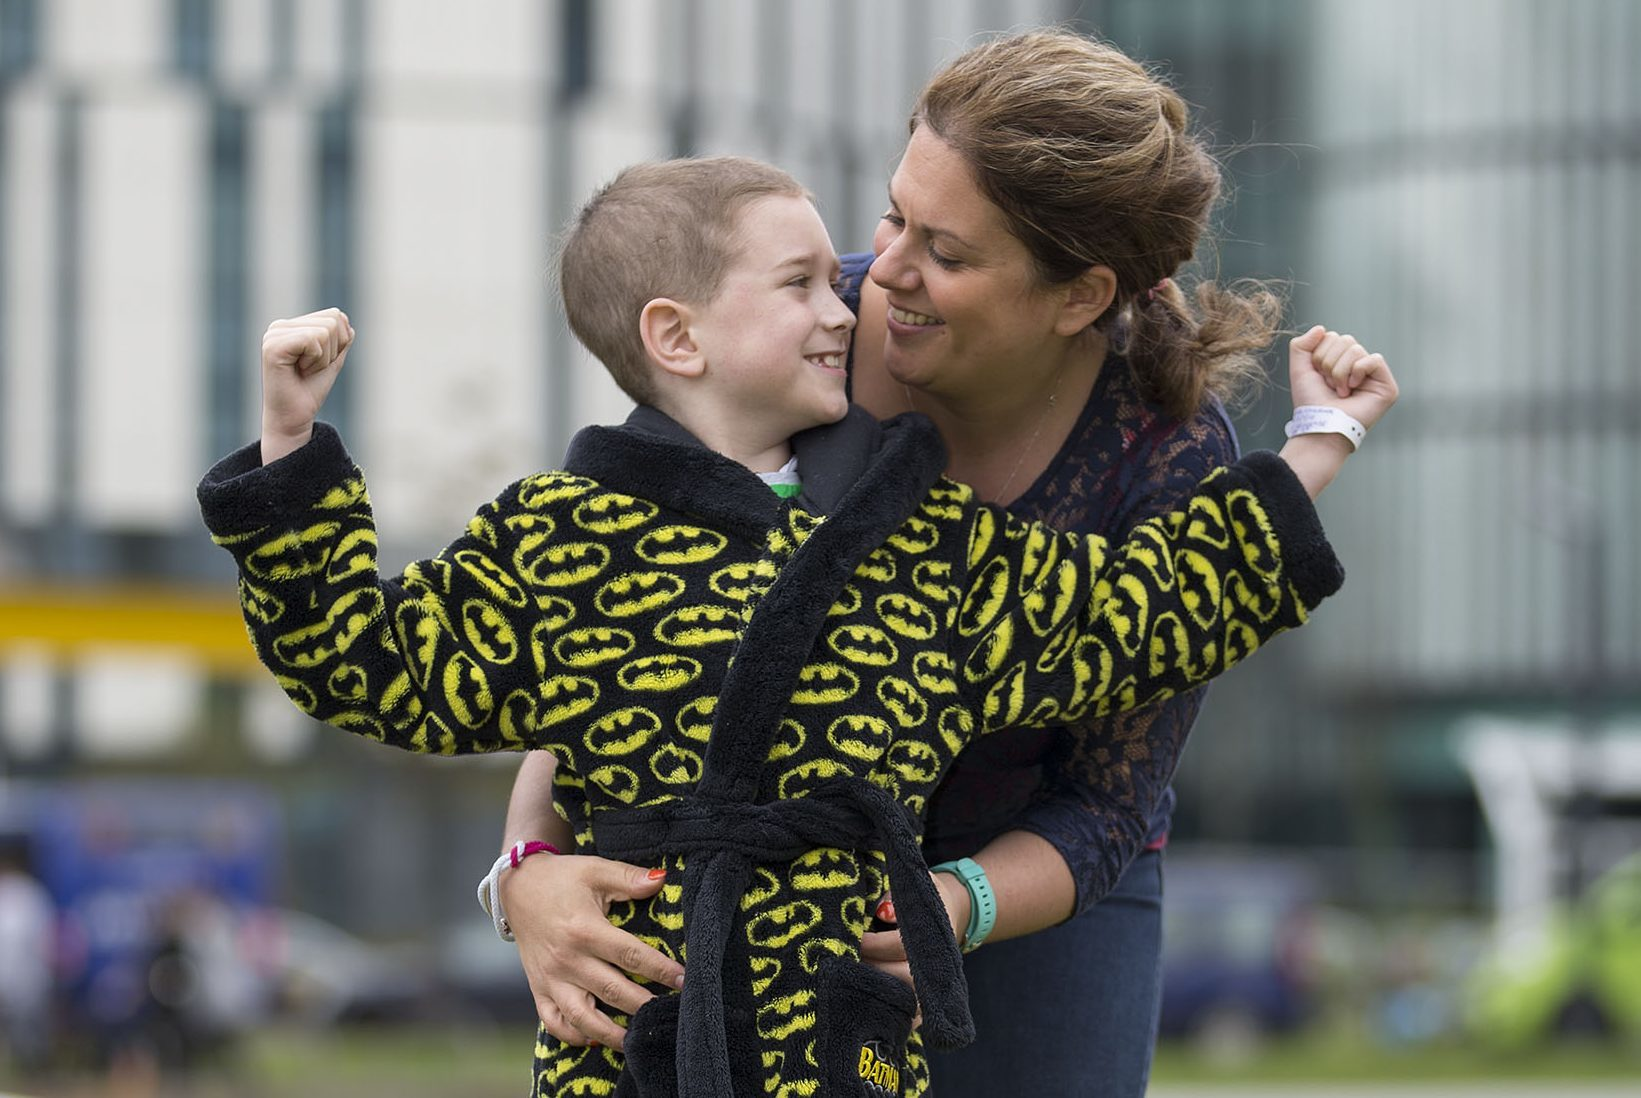 Cancer patient Daniel Gallacher (6) with his mum Alison Gallacher at the Royal Hospital for Children in Glasgow (Mick McGurk)